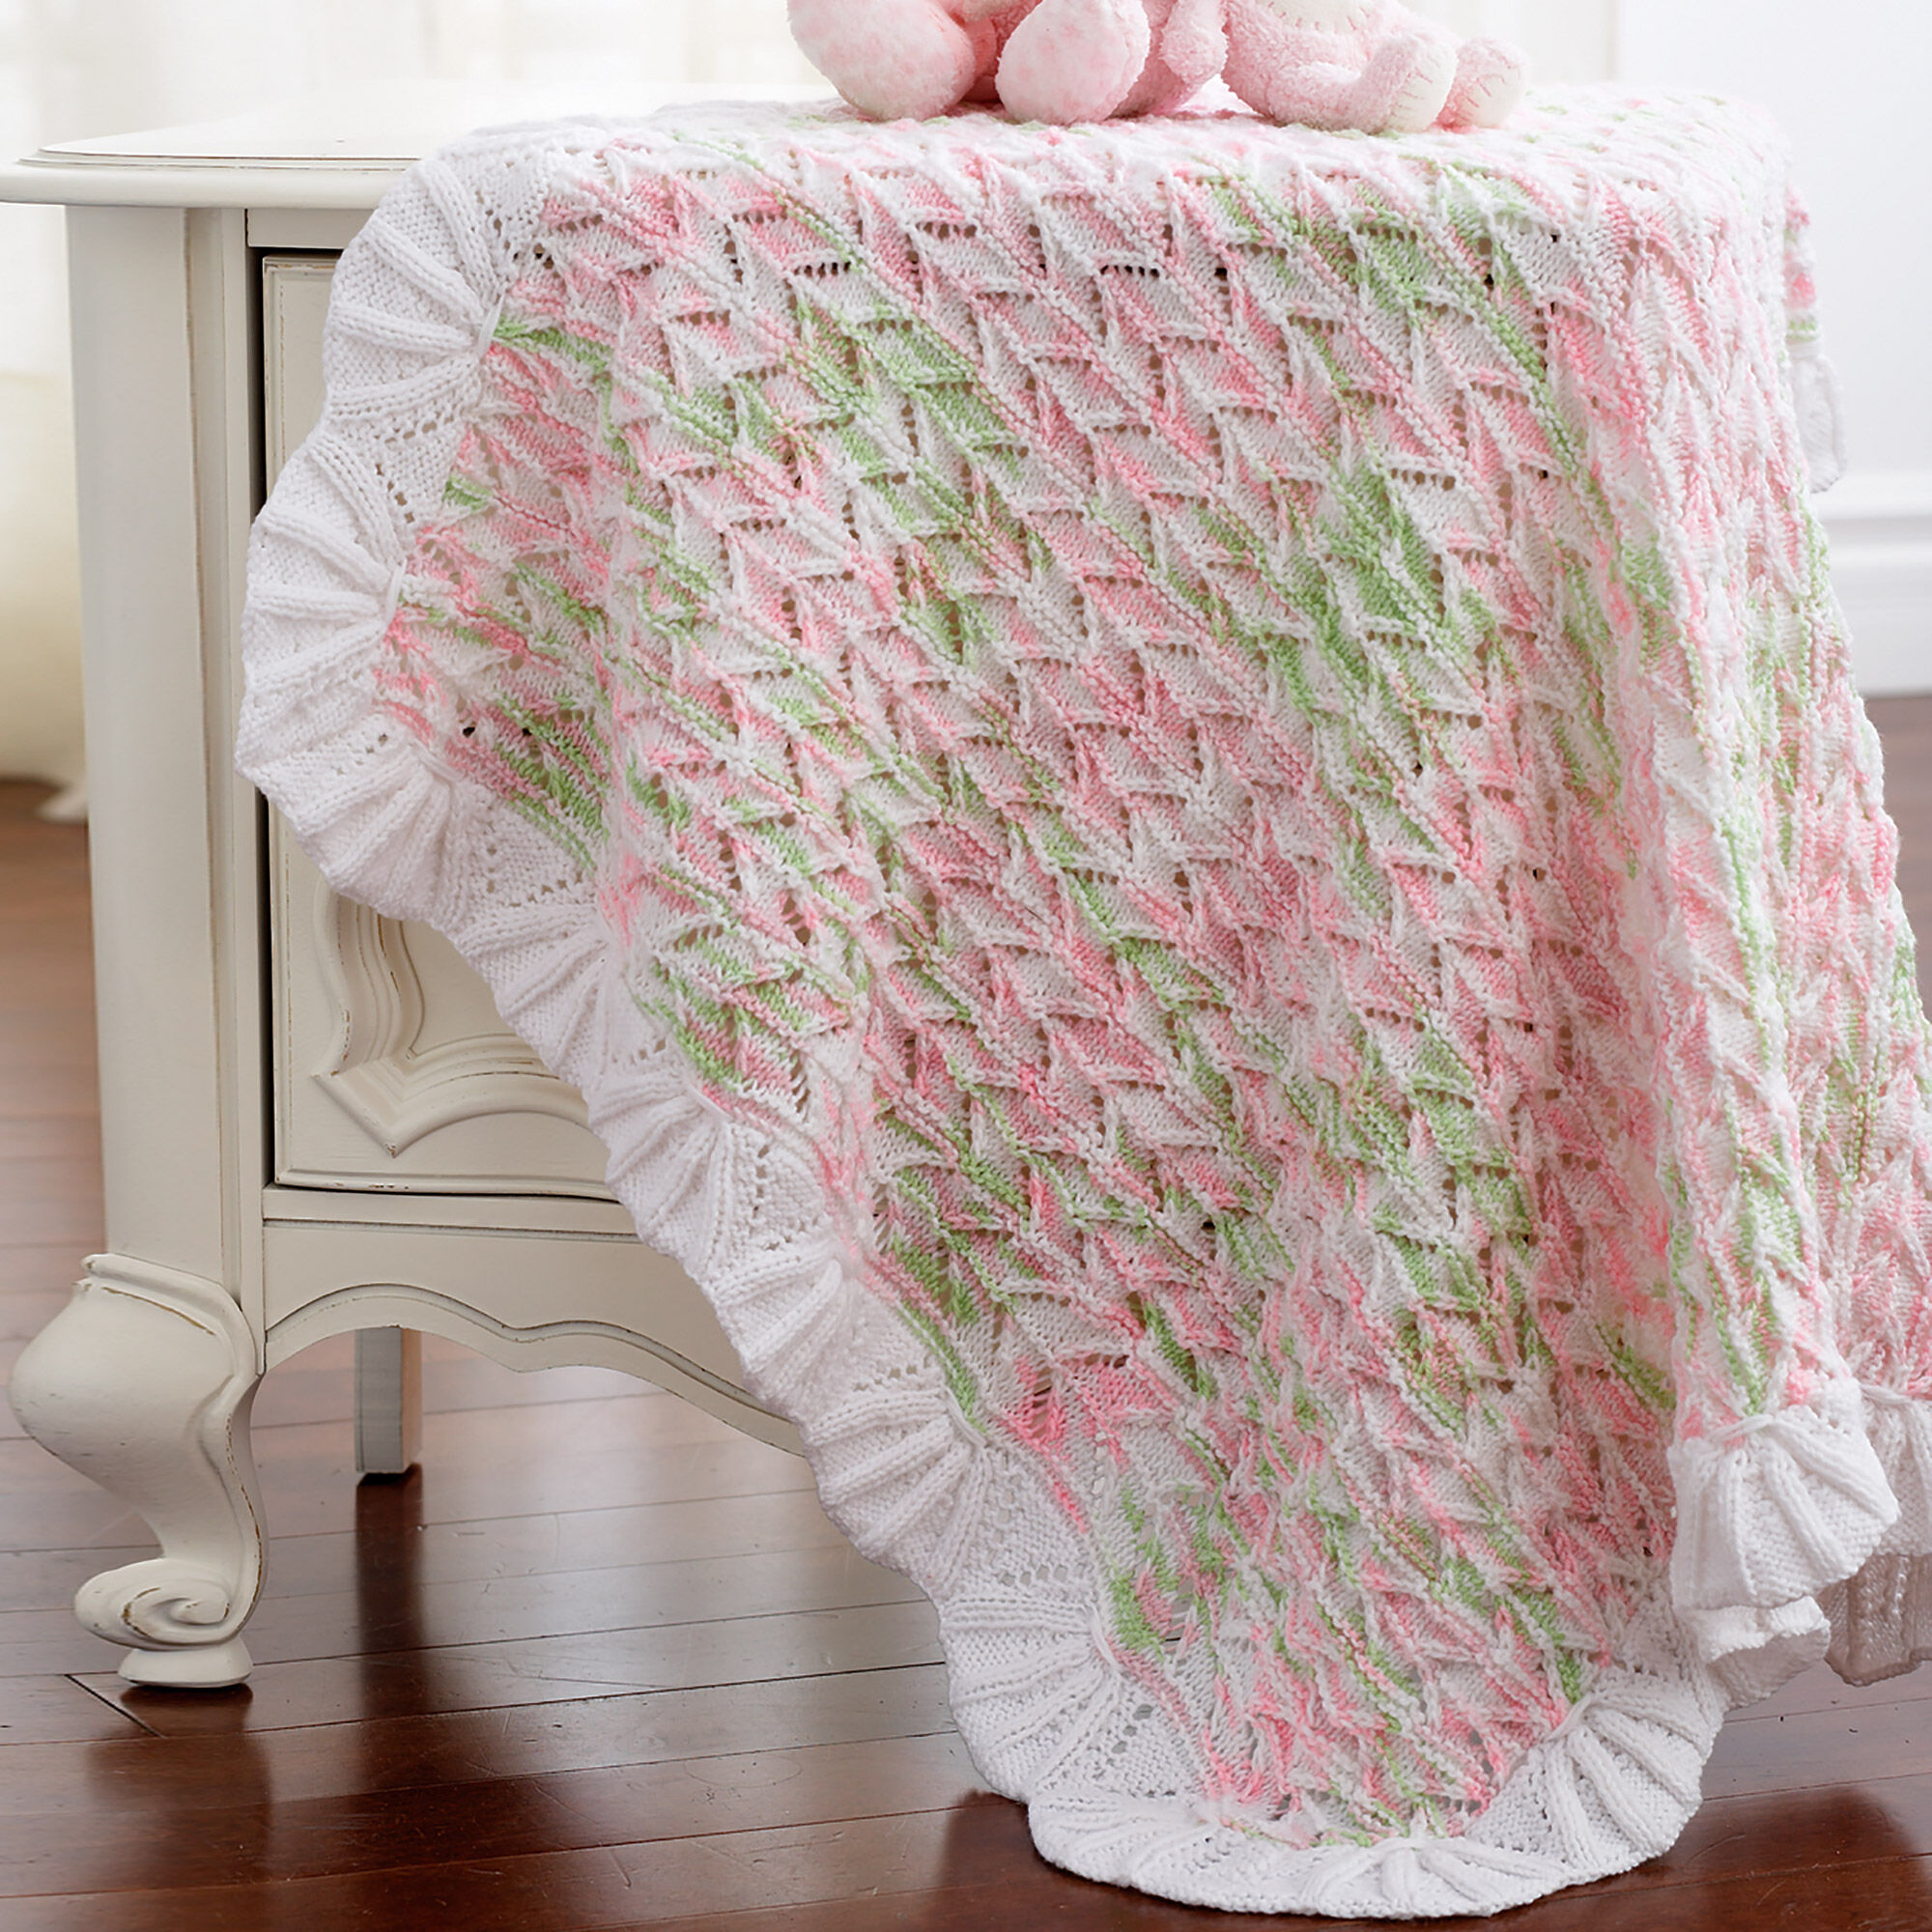 Bernat Lacy Blanket to Knit | Yarnspirations